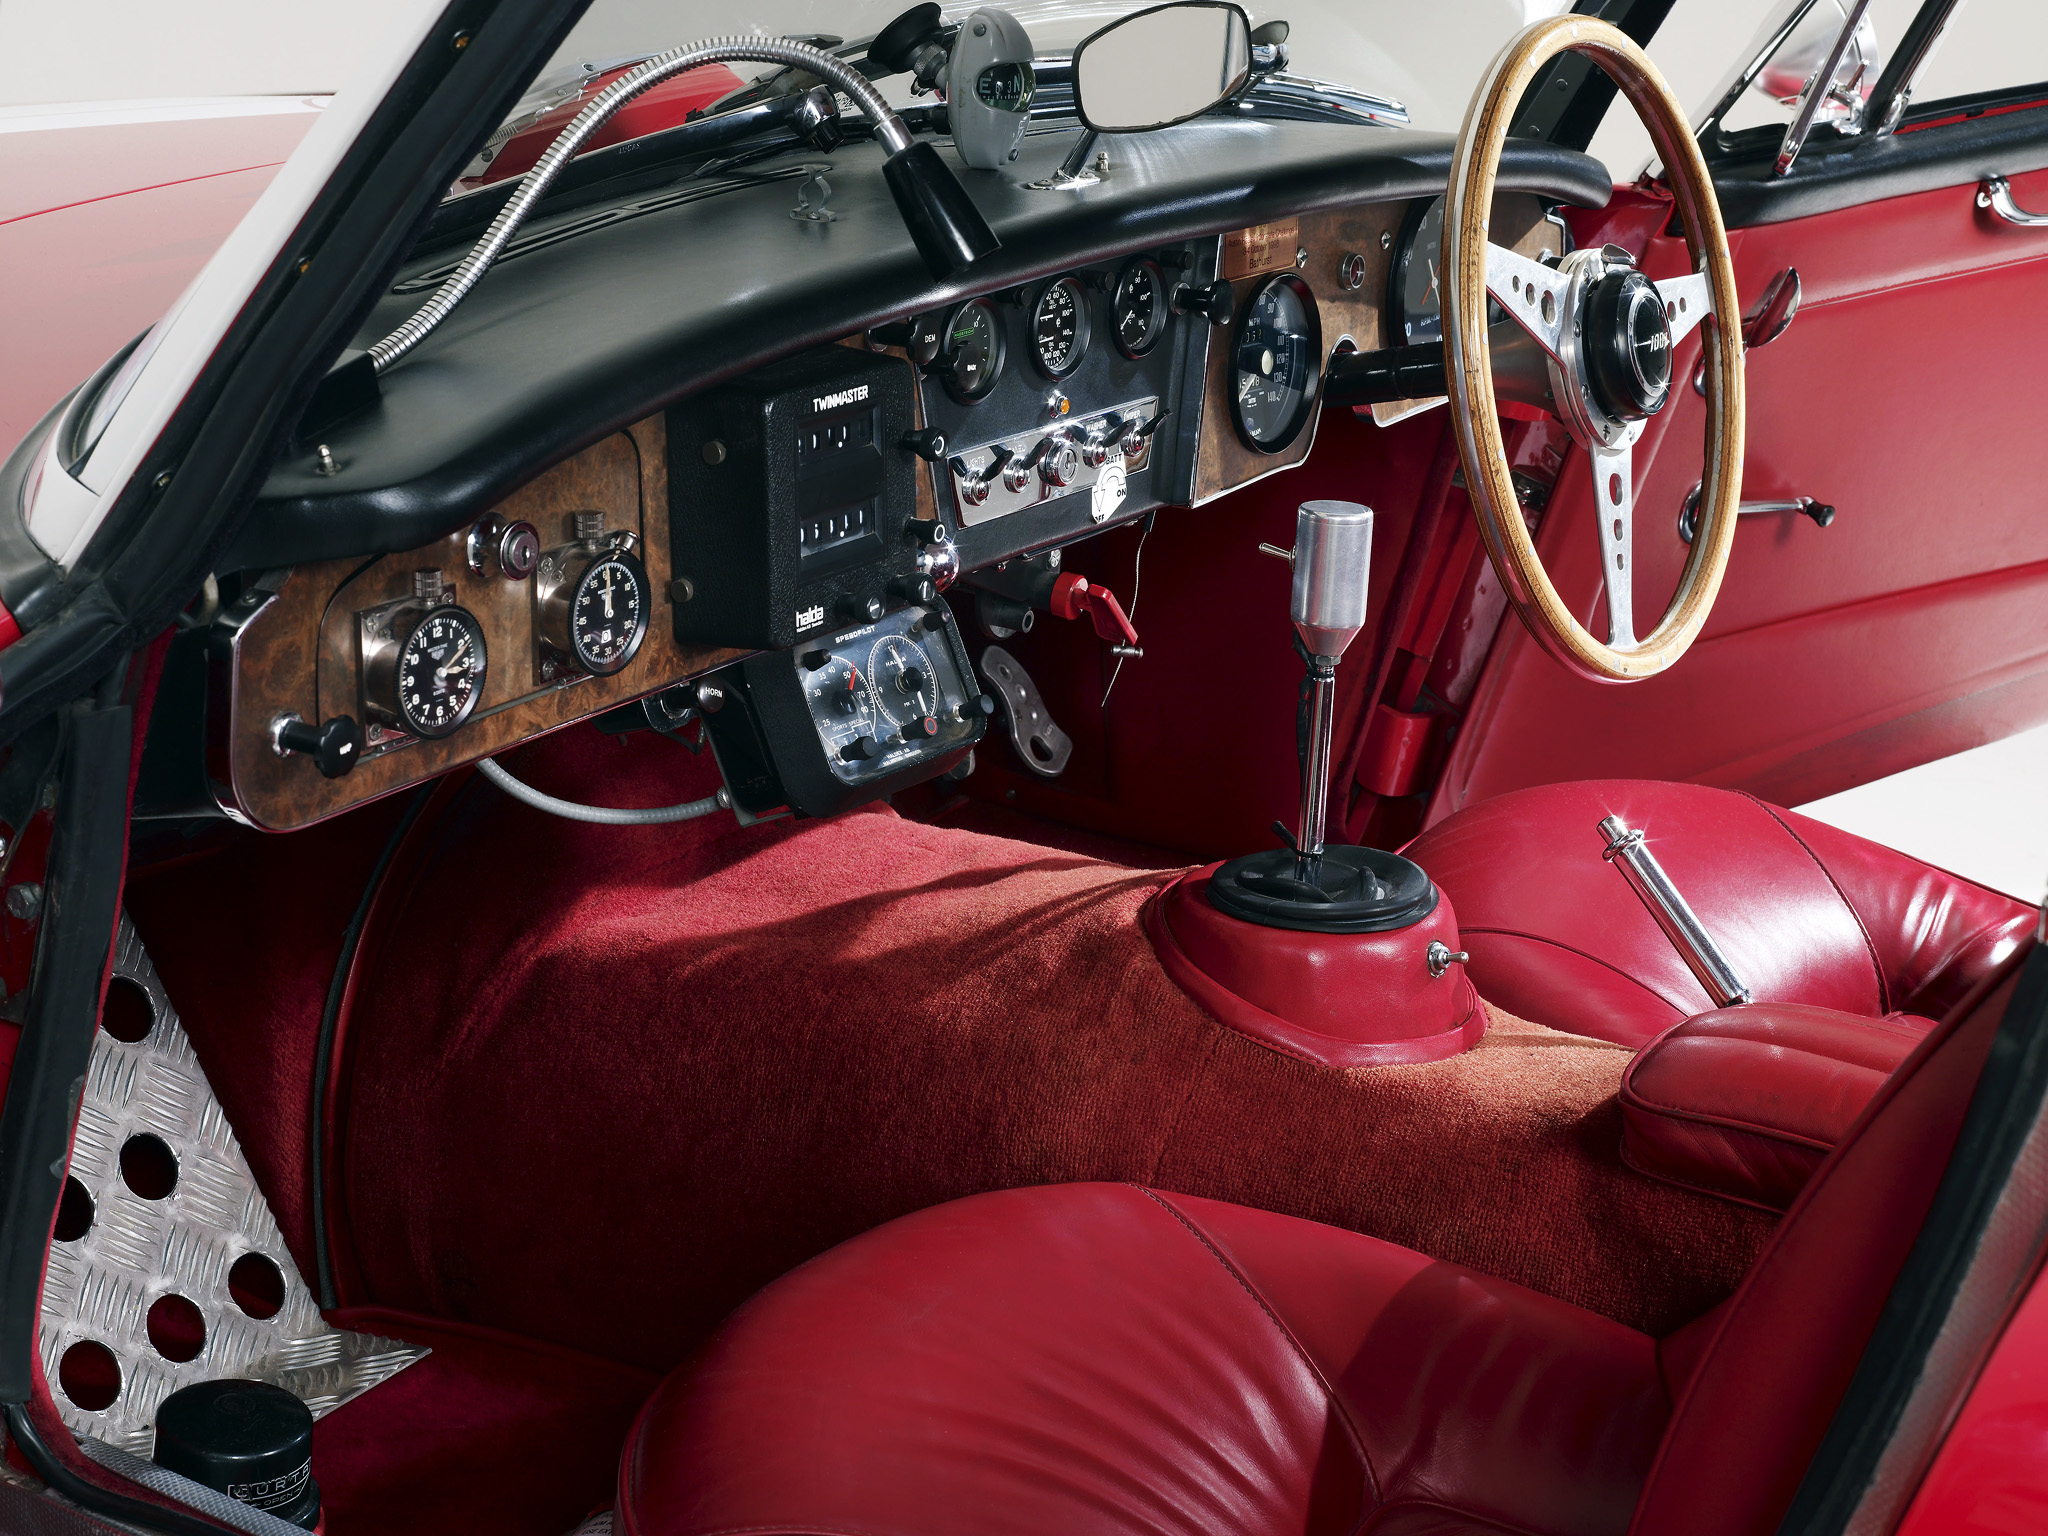 1967 austin healey 3000 rally car mkiii classic race racing interior f wallpaper 2048x1536